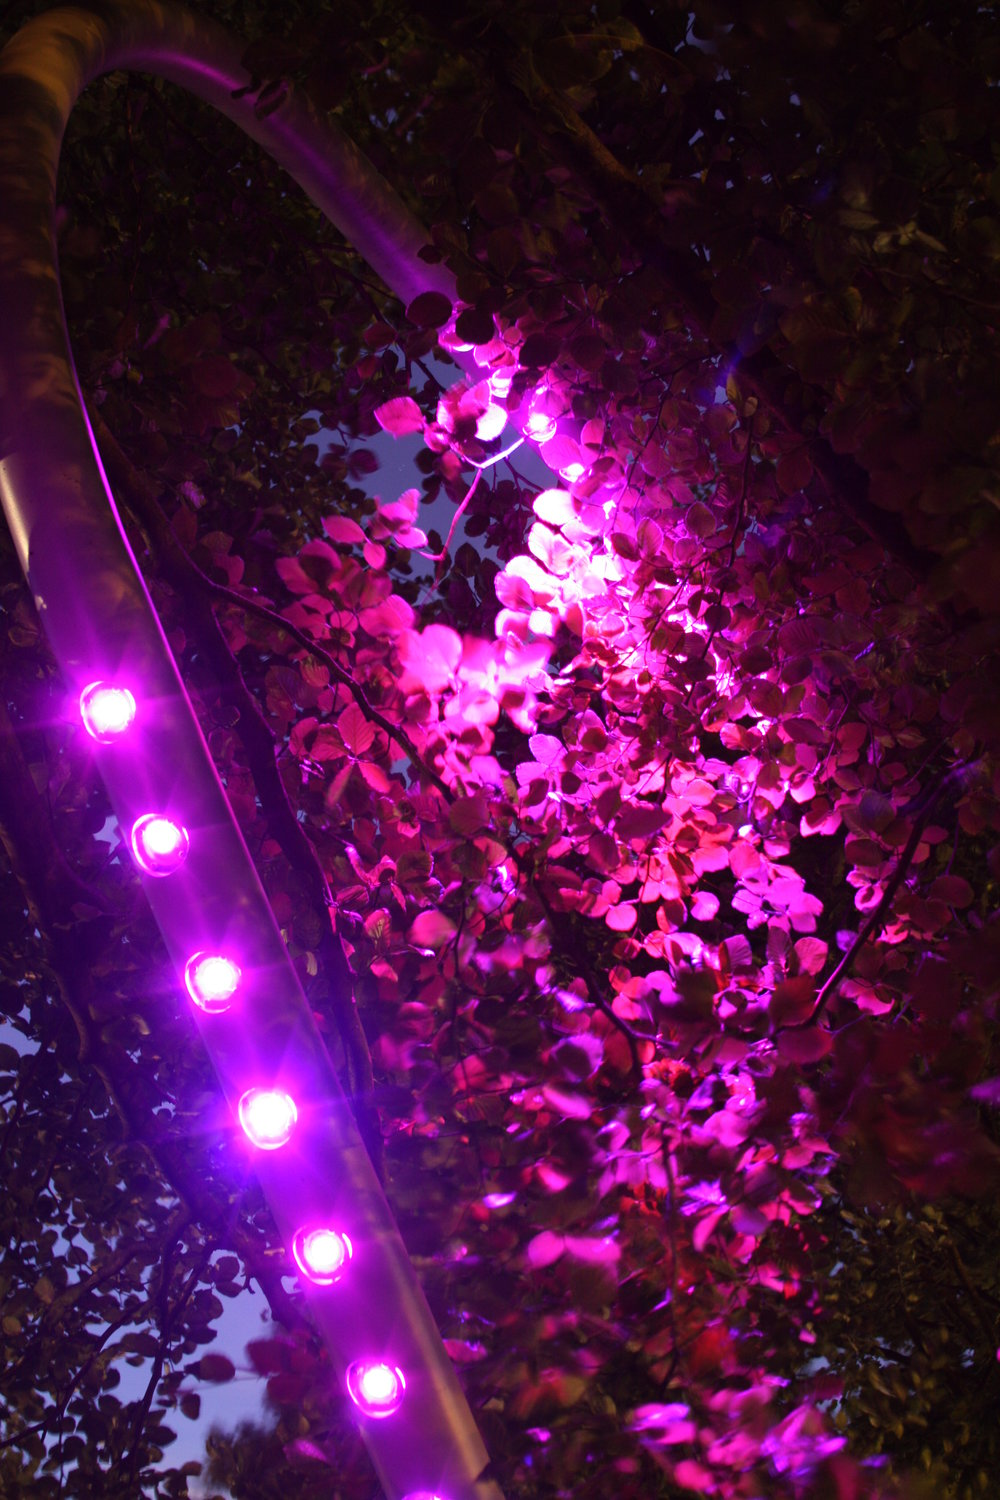 JBS_NormandPark_bright-pink-light.jpg